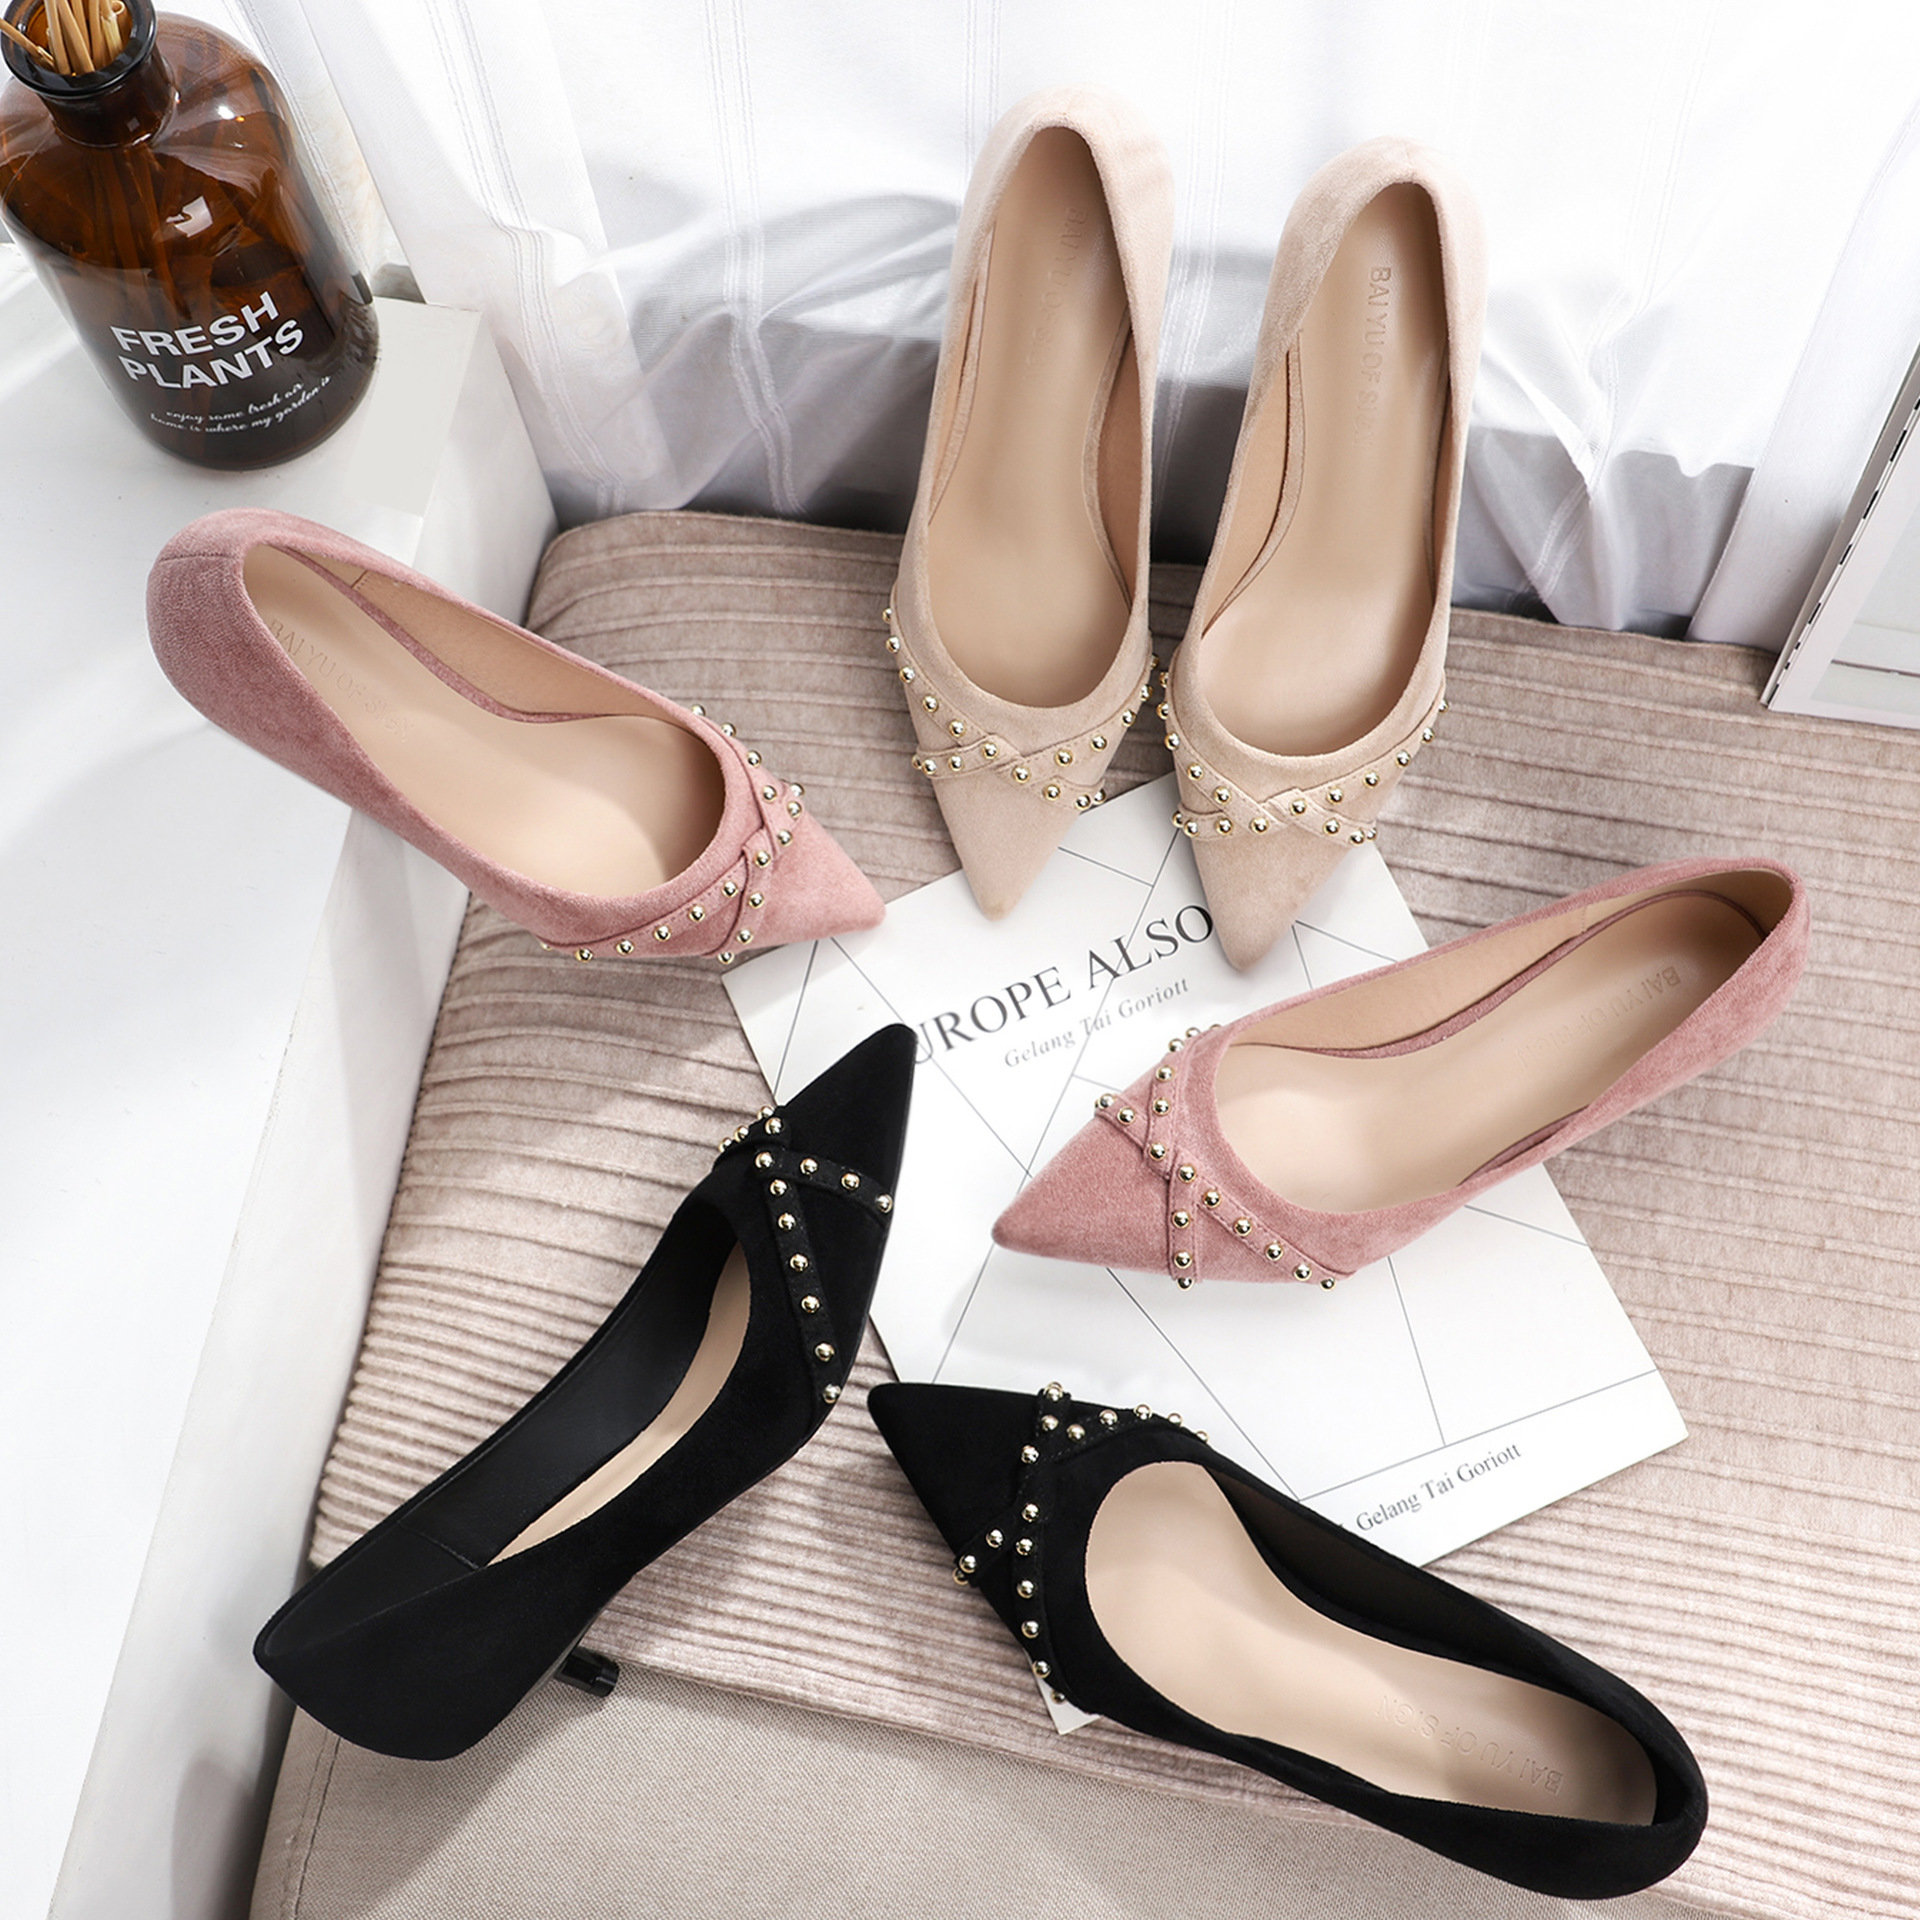 Elegant elegant womens shoes high heel shoes 3cm thin heel low heel pointed suede professional casual shoes BY296